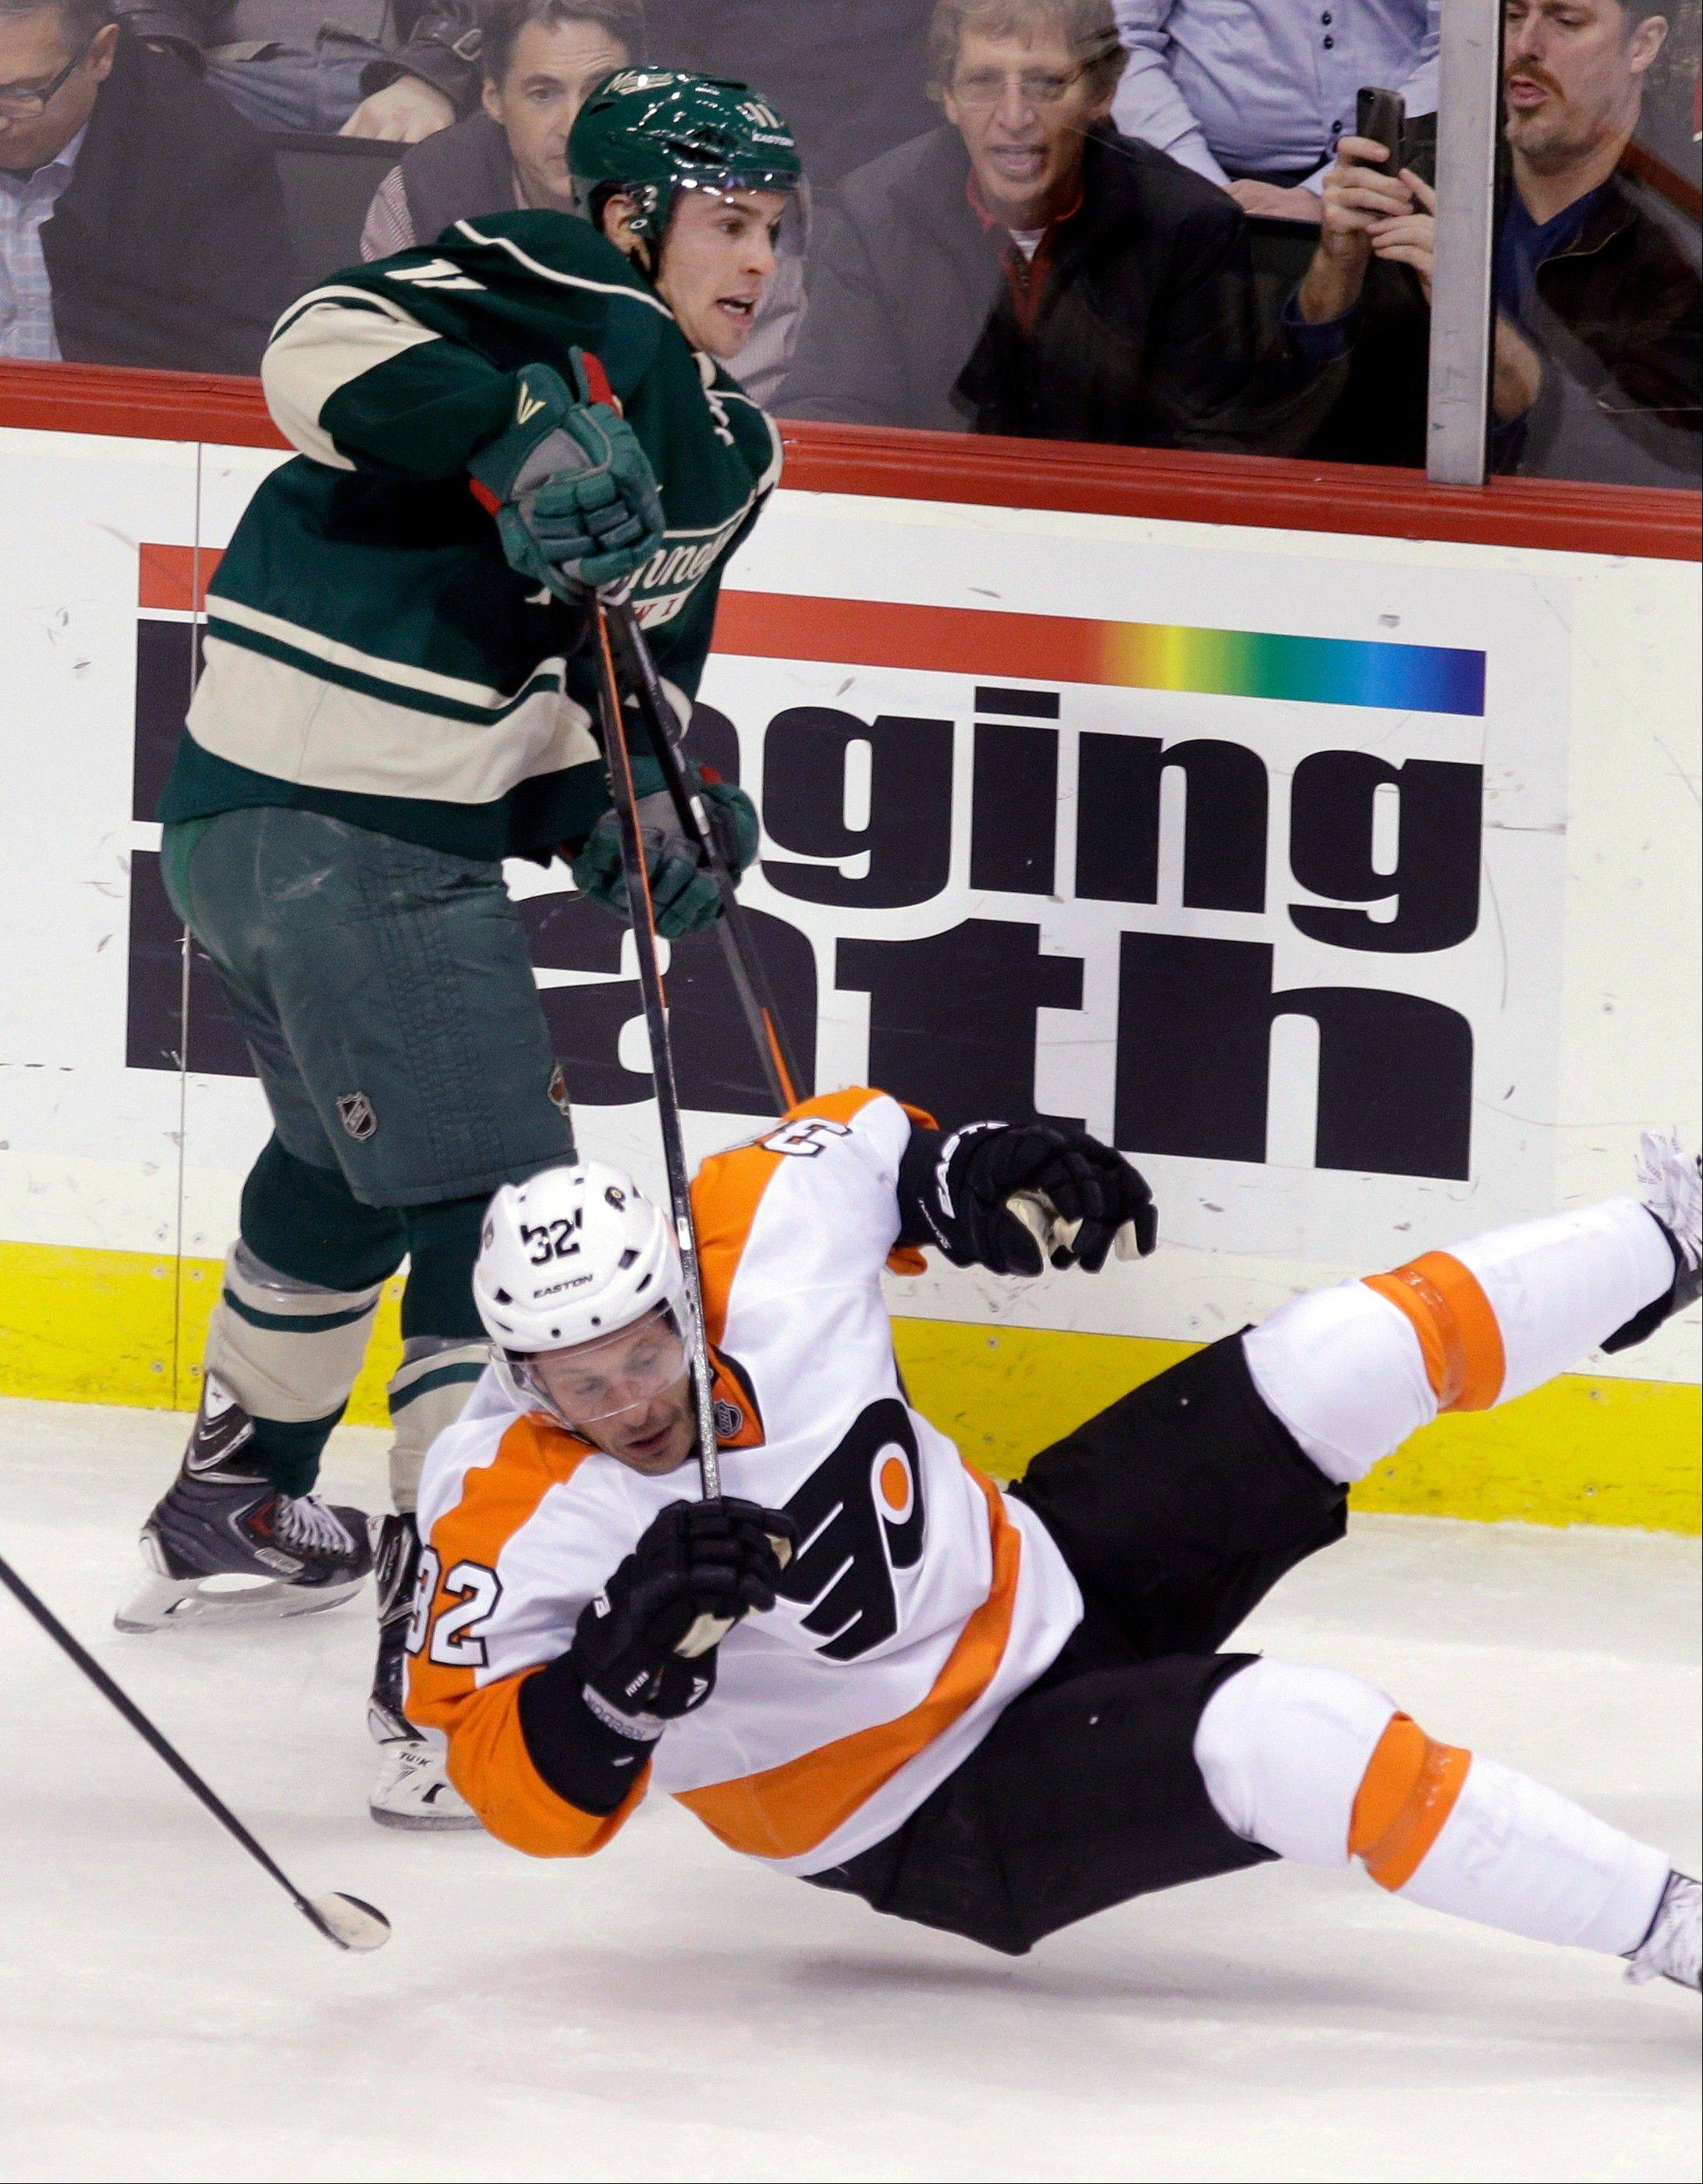 Minnesota Wild�s Zach Parise, top, sends Philadelphia Flyers defenseman Mark Streit to the ice in the first period of an NHL hockey game Monday in St. Paul, Minn.